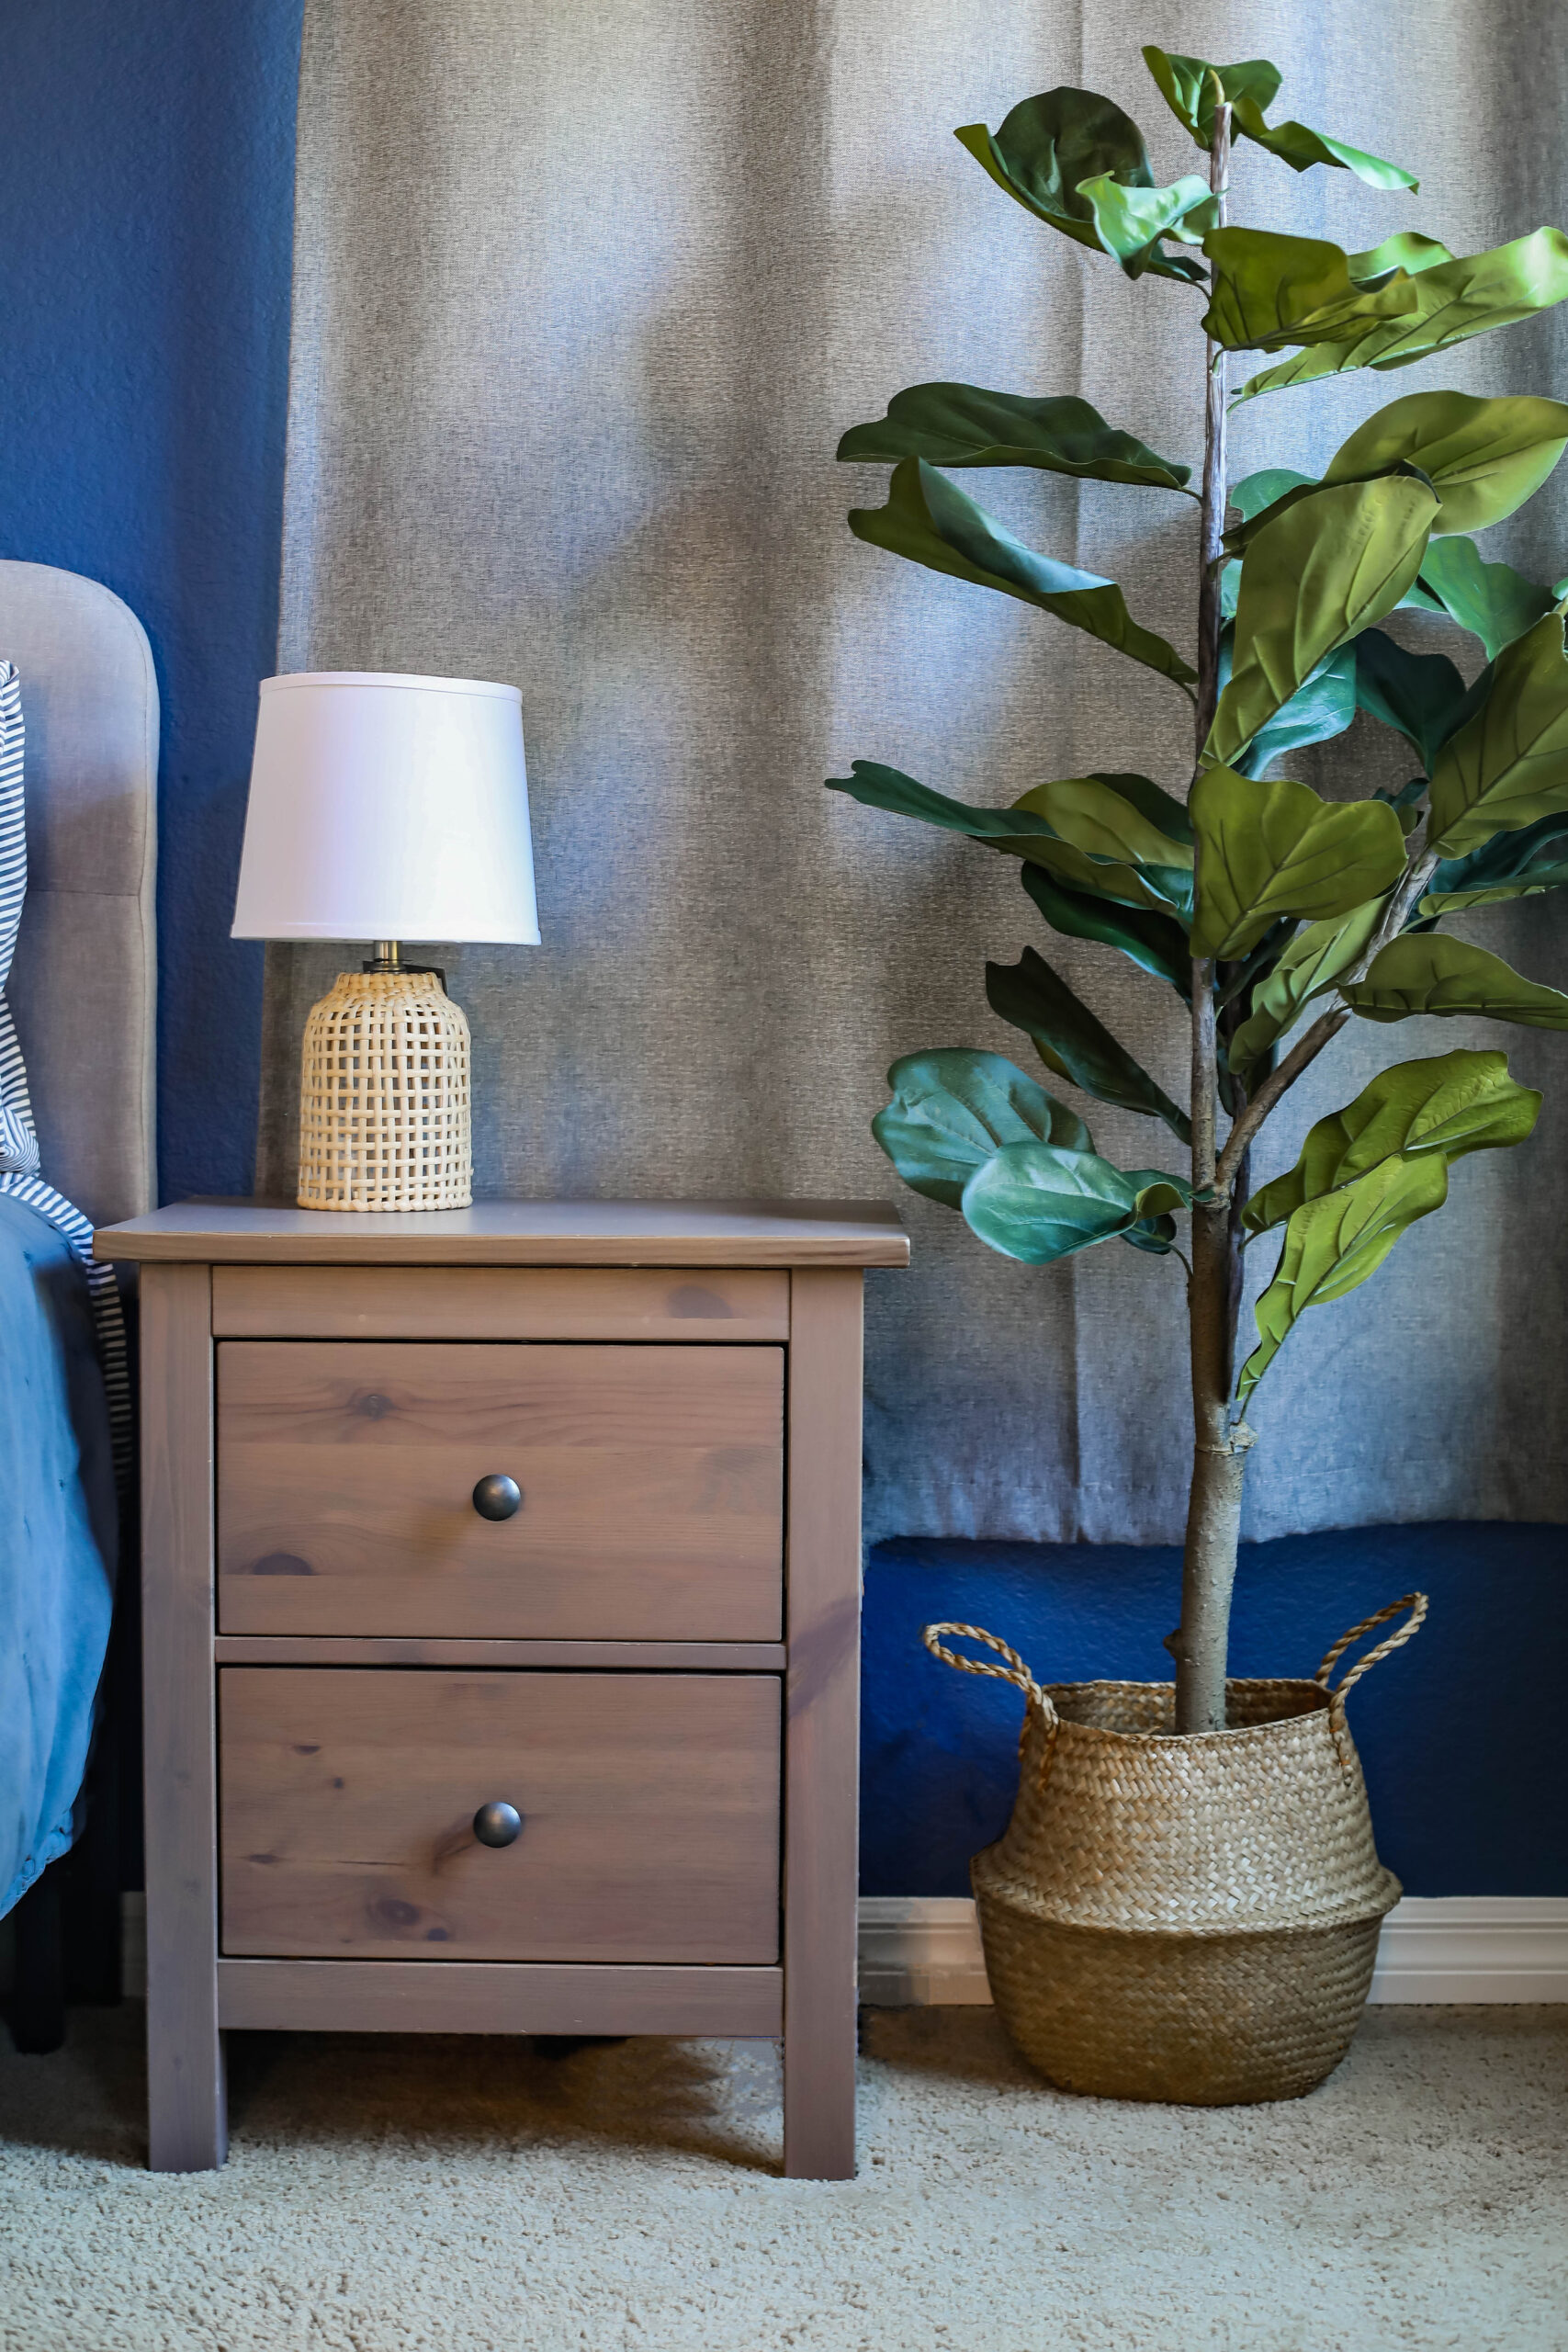 Looking for navy and grey bedroom decor? I love how the faux fiddle leaf tree adds a pop of color to the bedroom, and those rattan lamps are PERFECT!